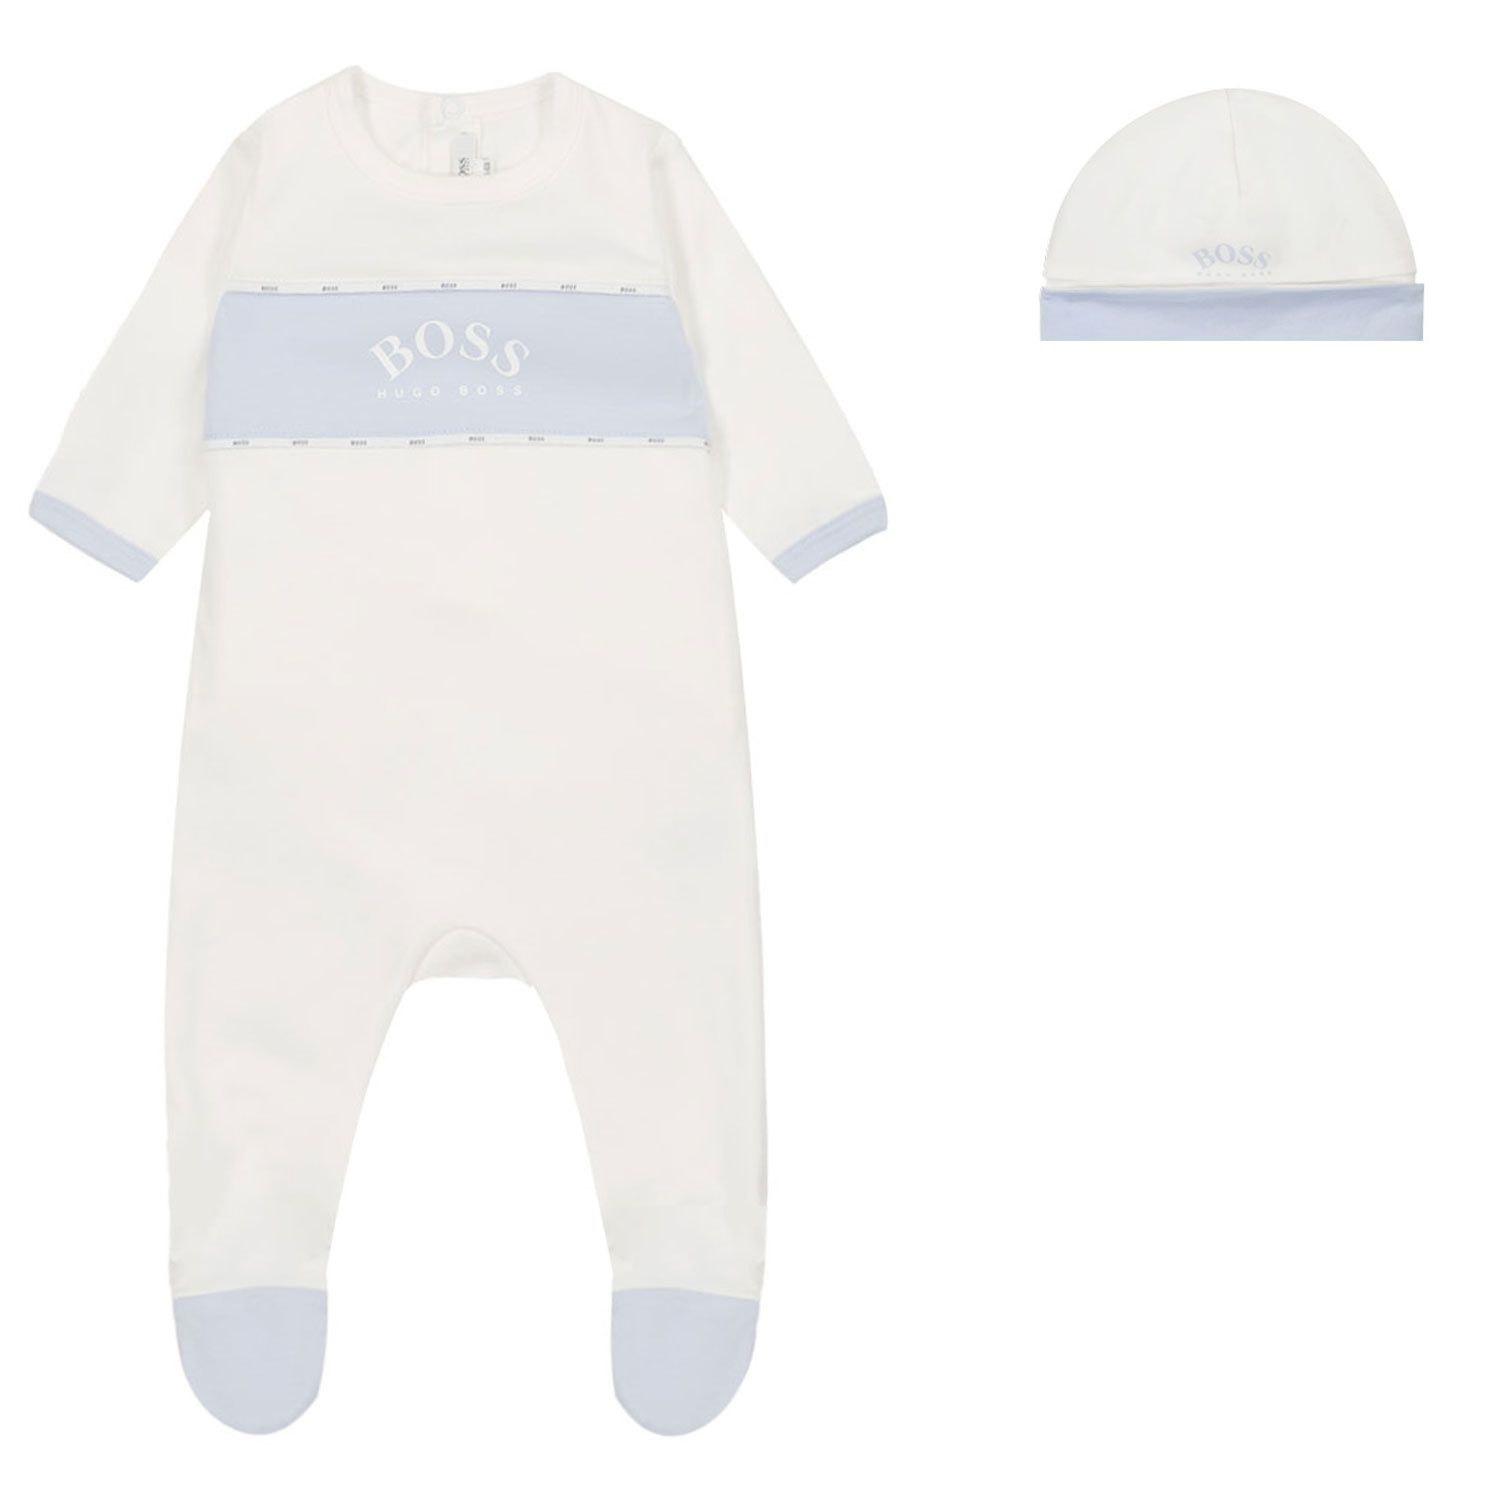 Picture of Boss J98309 baby playsuit white